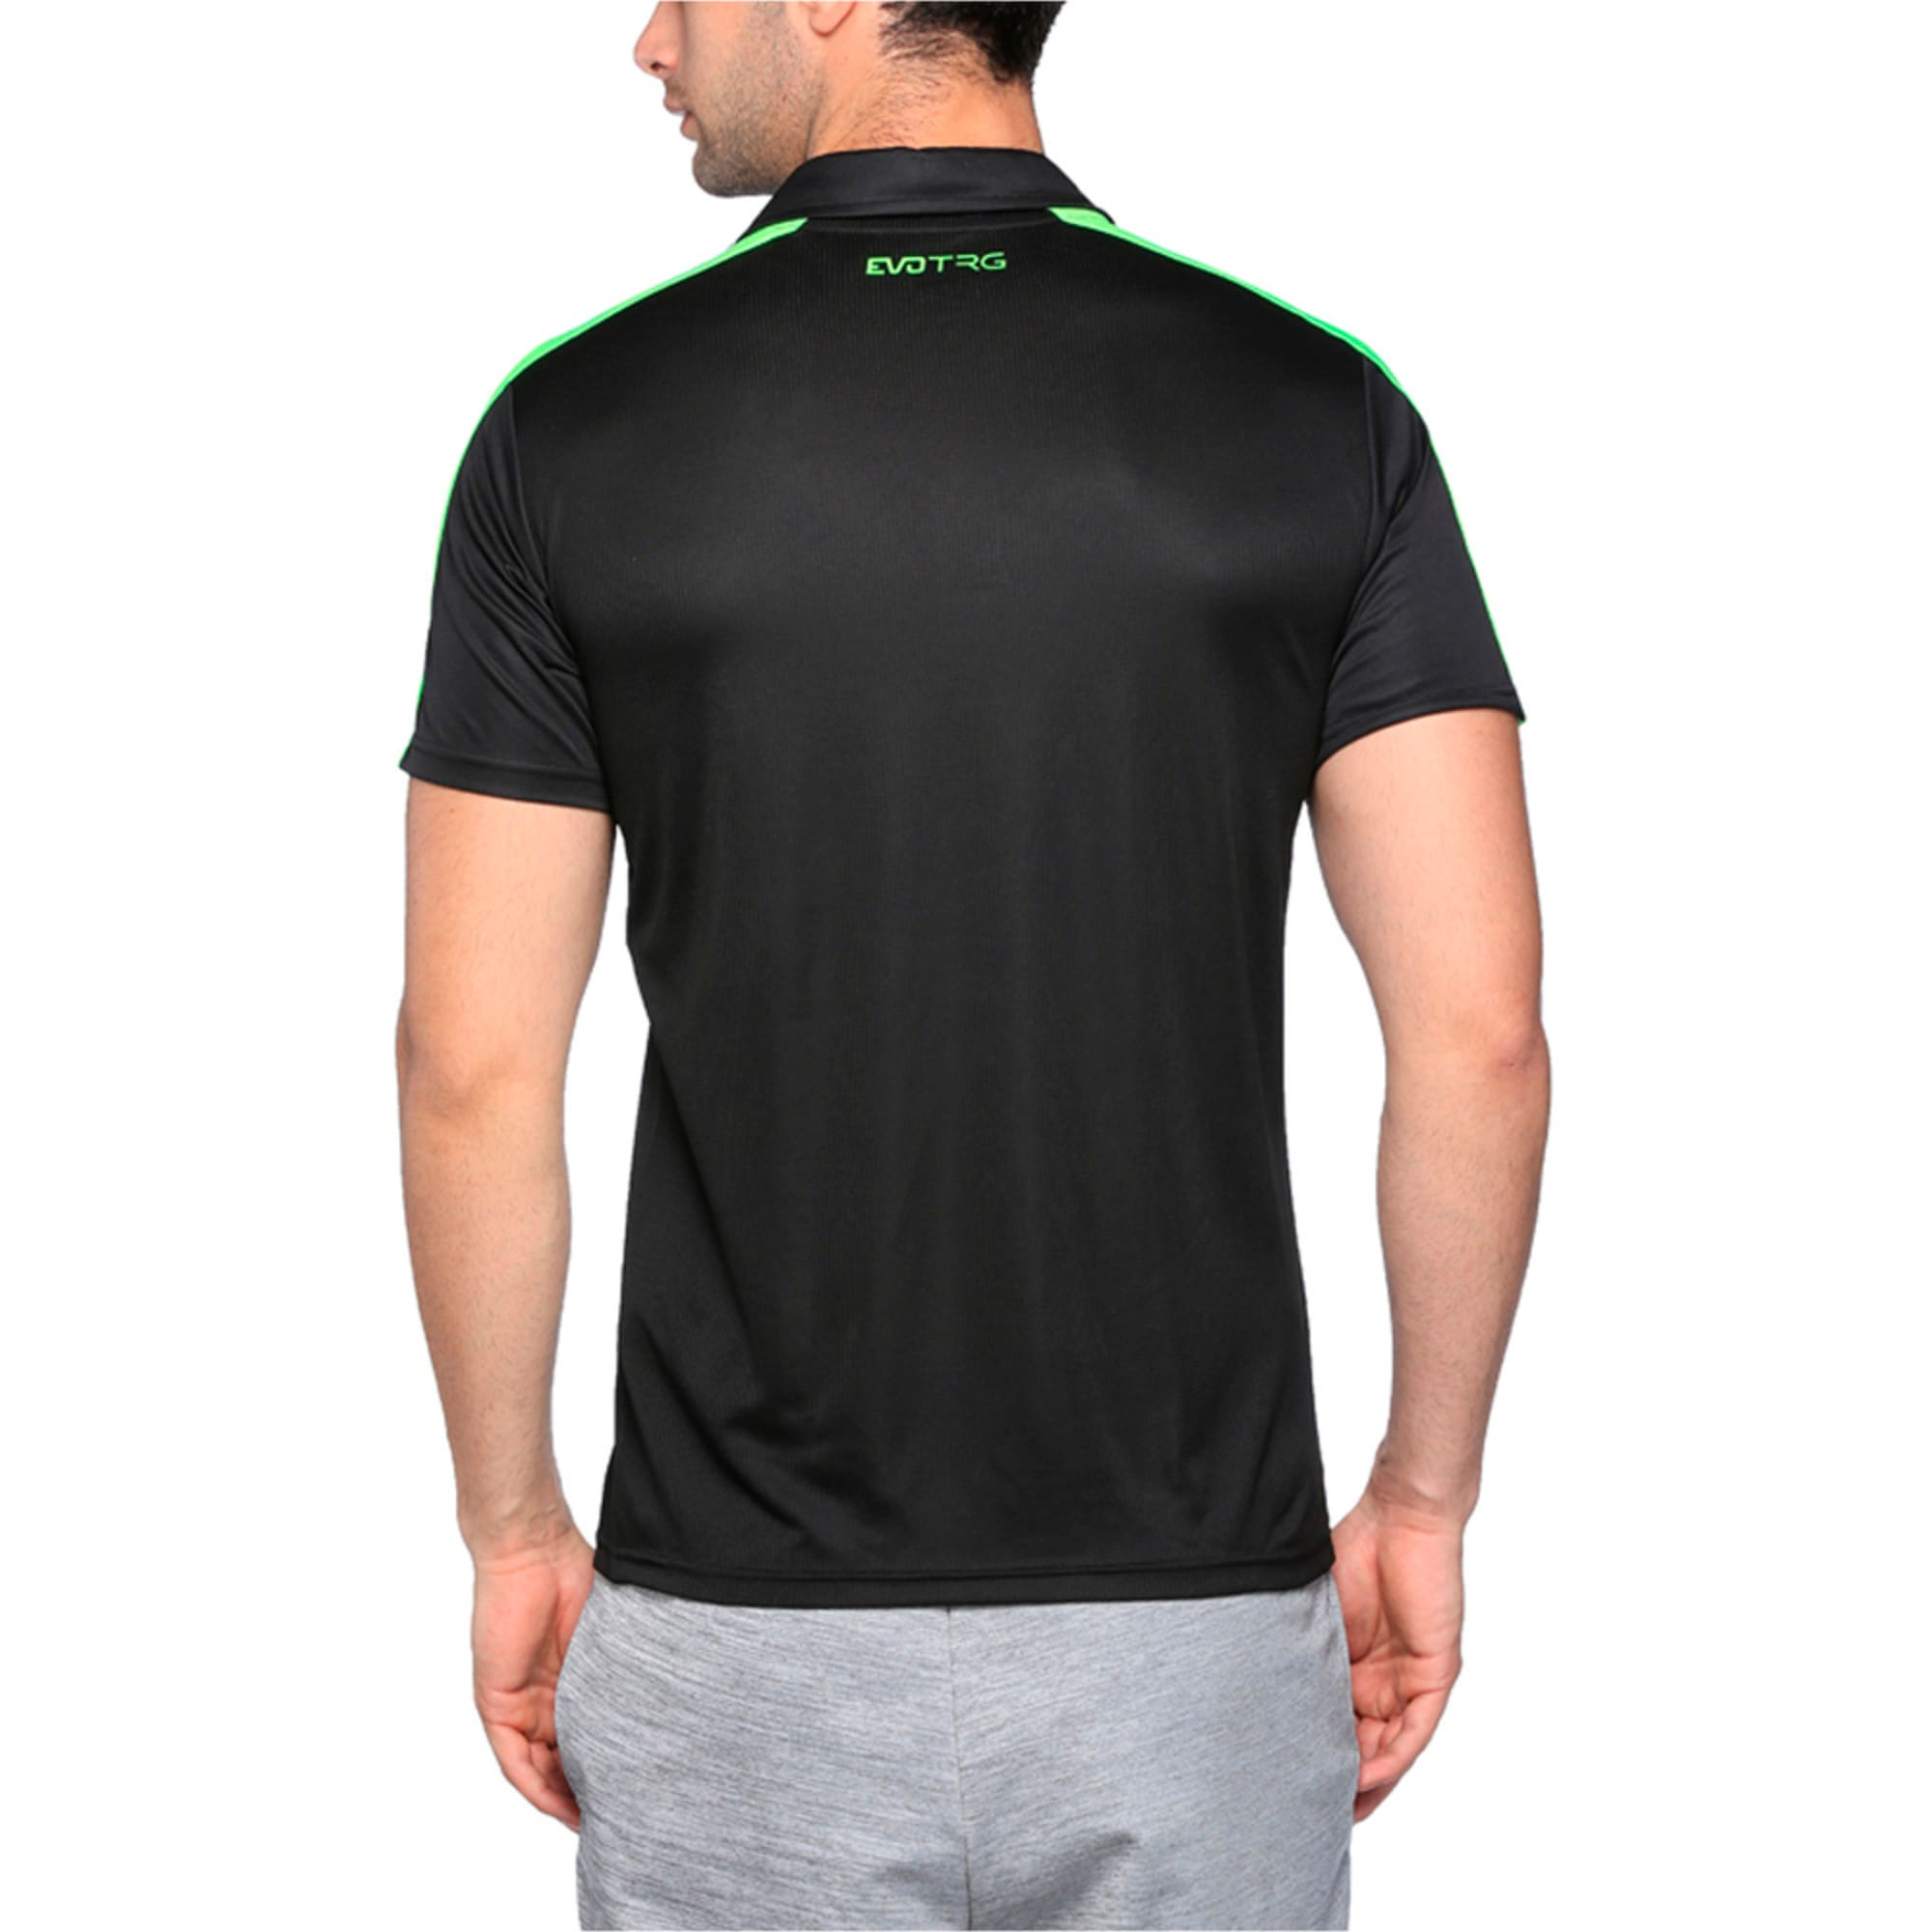 Thumbnail 2 of IT evoTRG Polo, Puma Black-Green Gecko, medium-IND